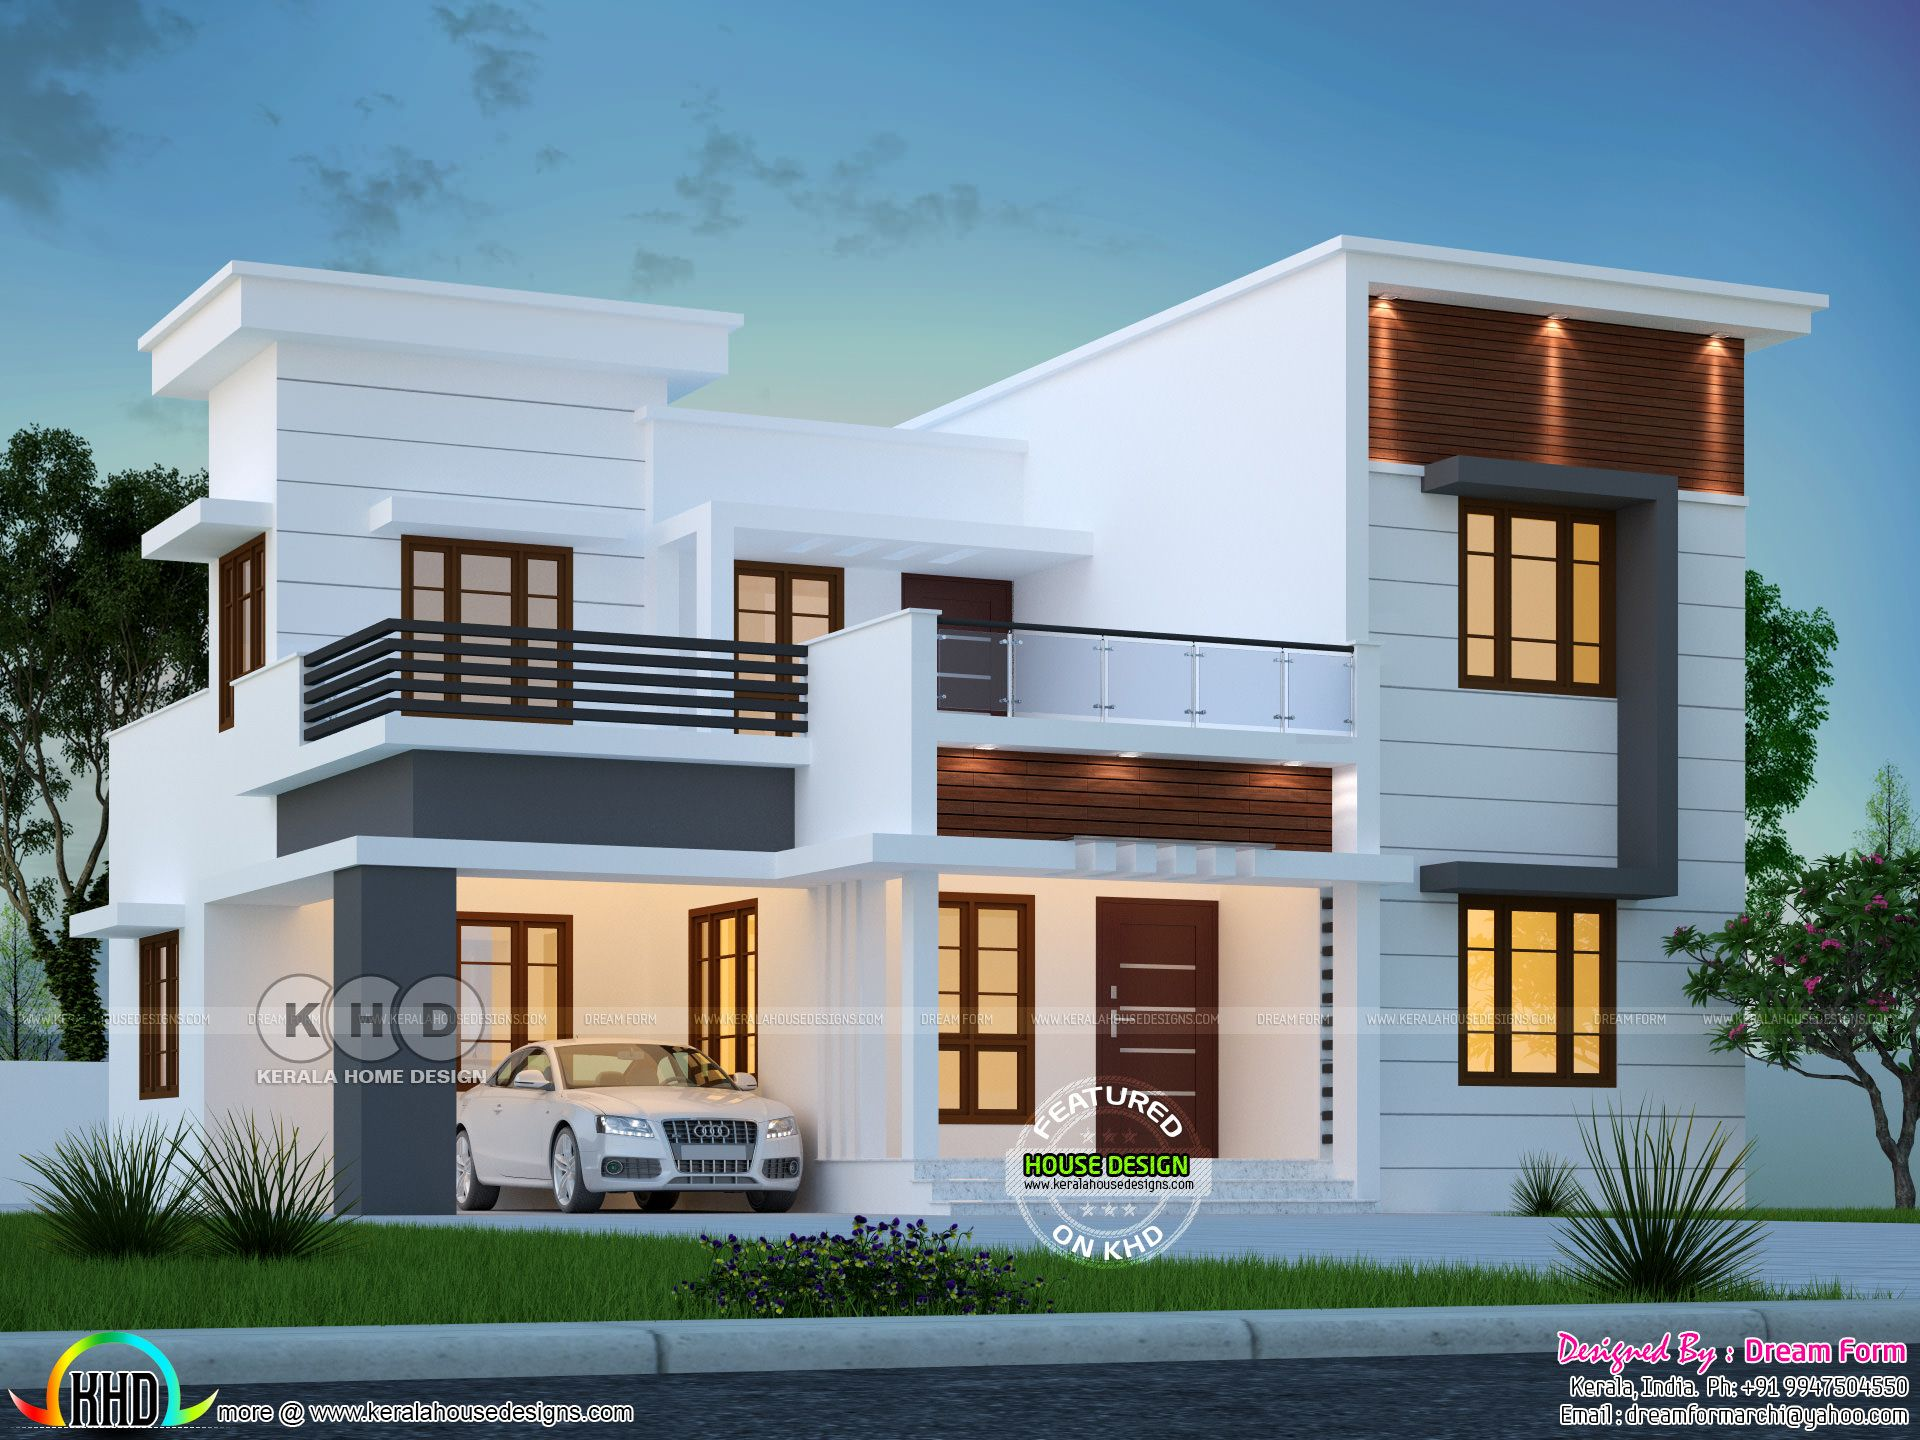 4 Bedroom 2102 Sq Ft Modern Home Design Kerala House Design Modern House Design Residential House